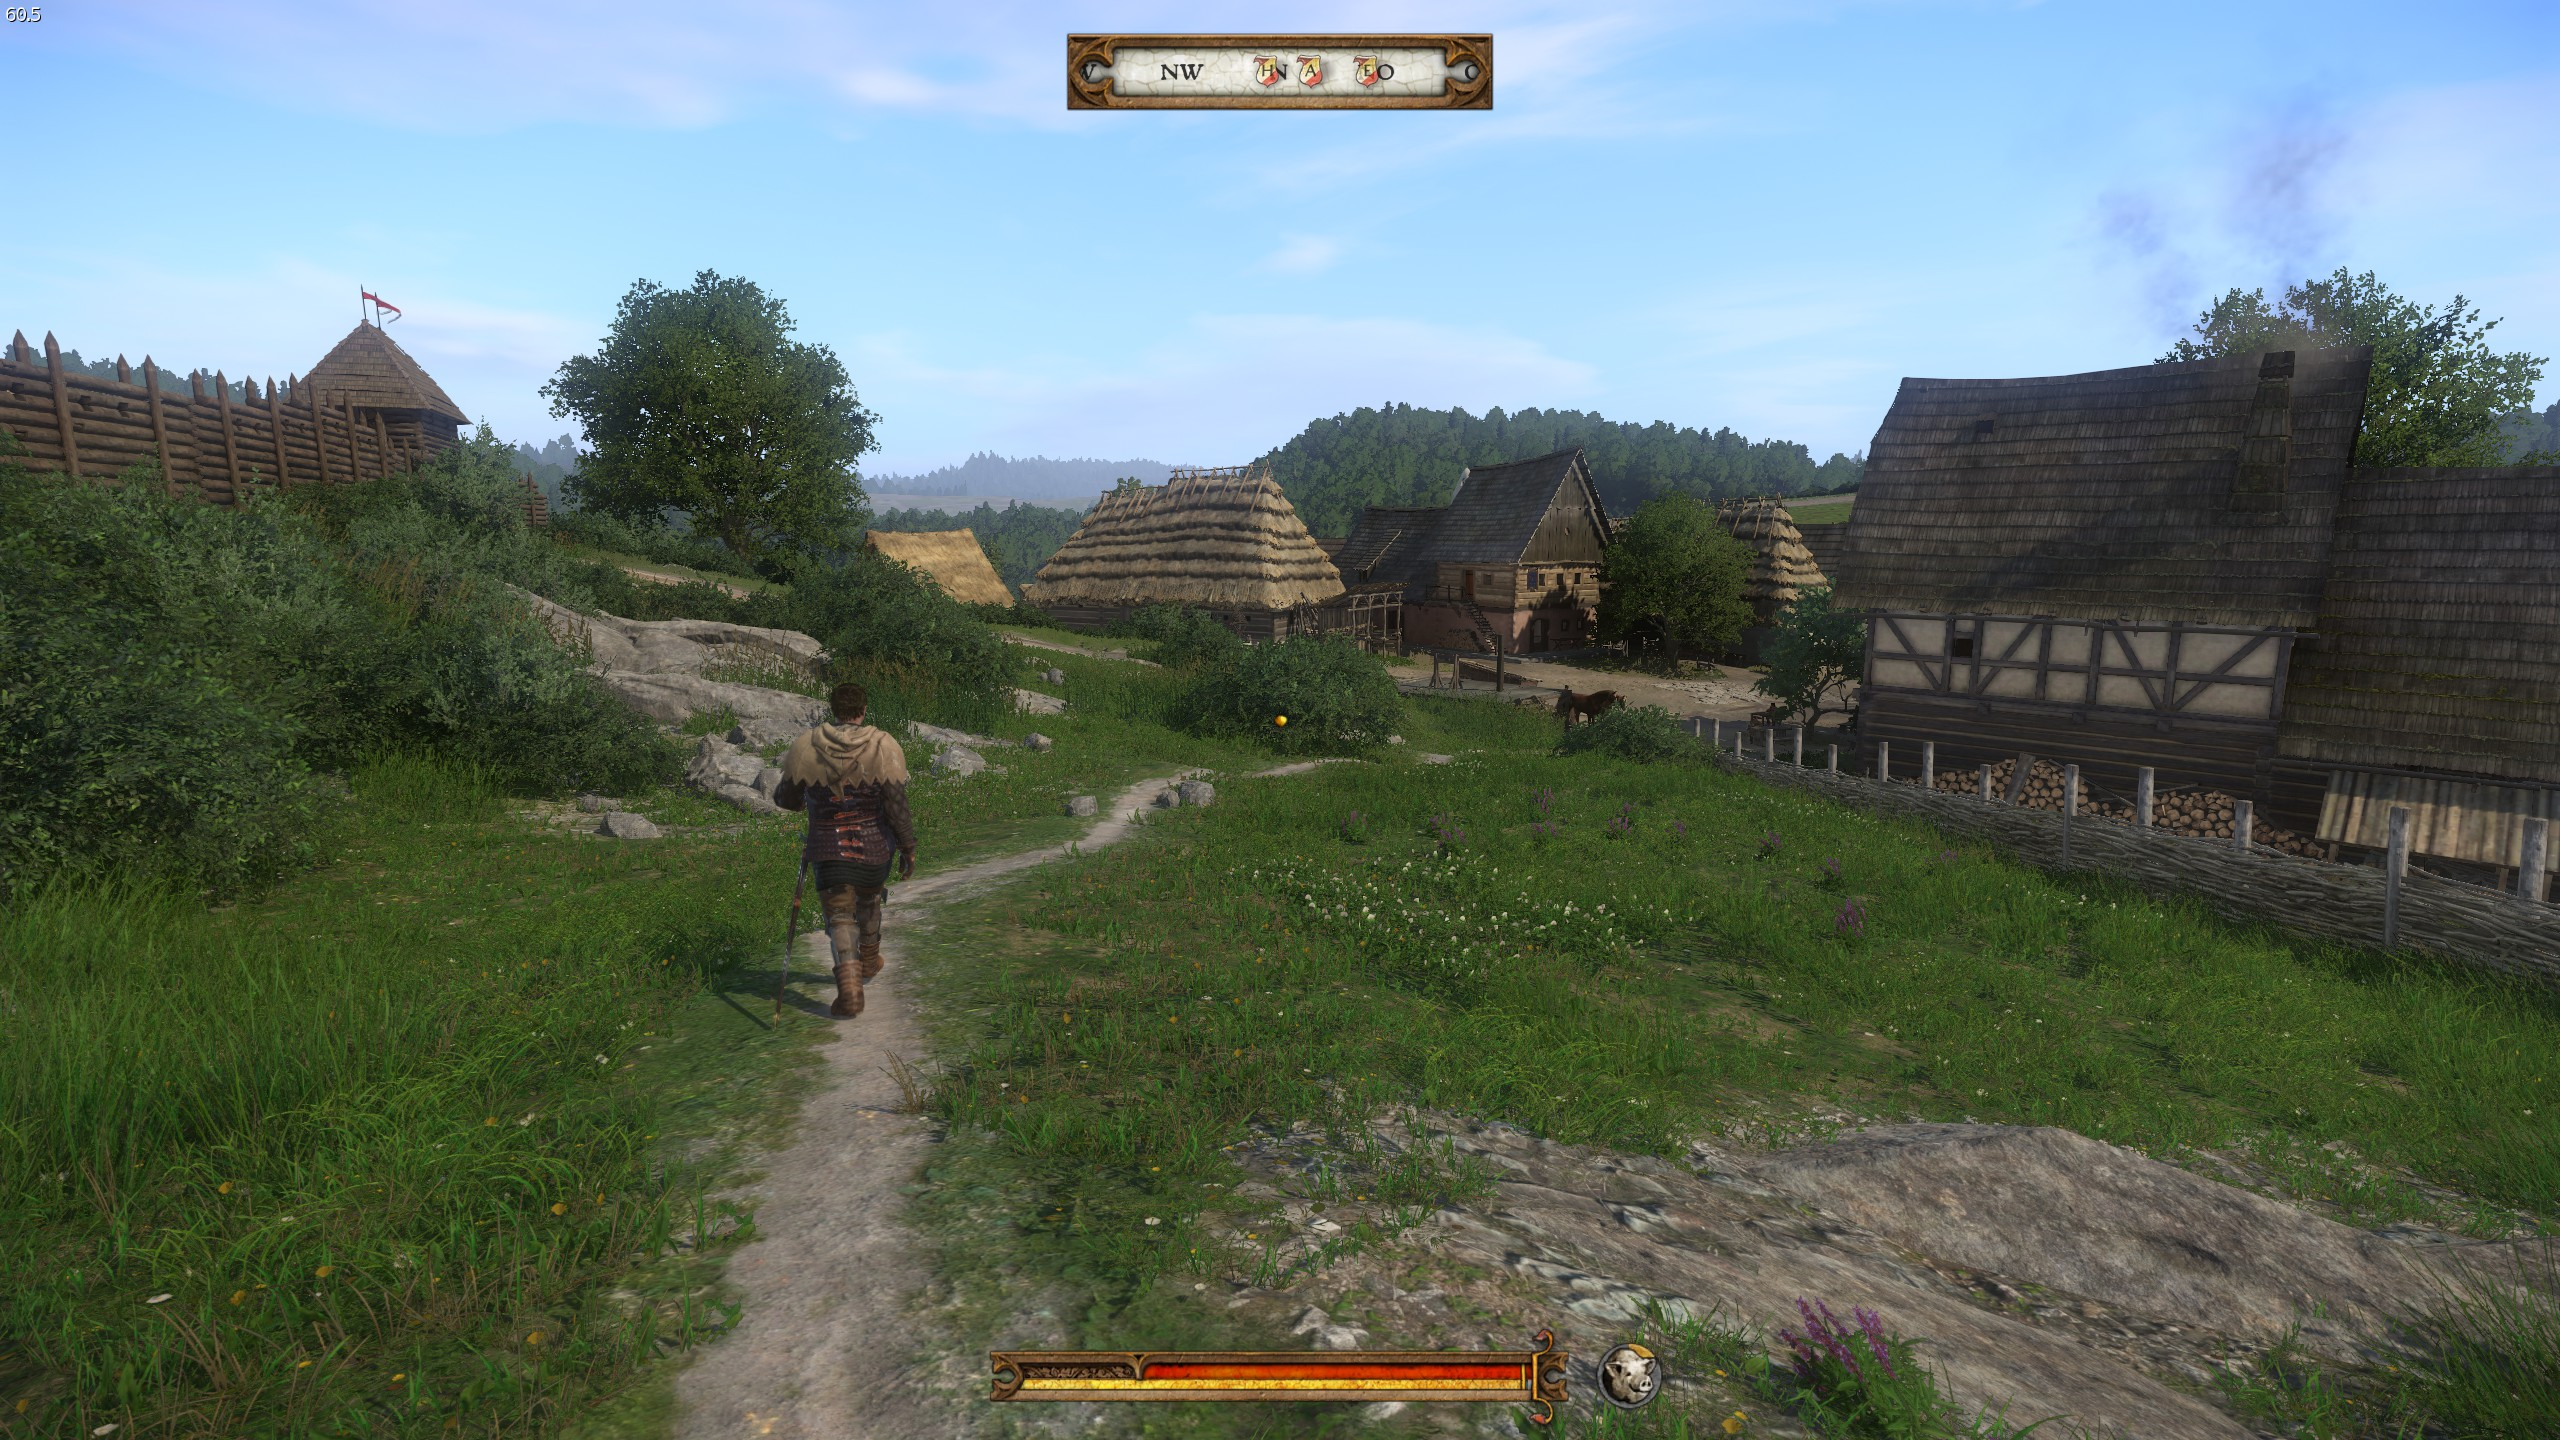 Kingdome Come Deliverance 1